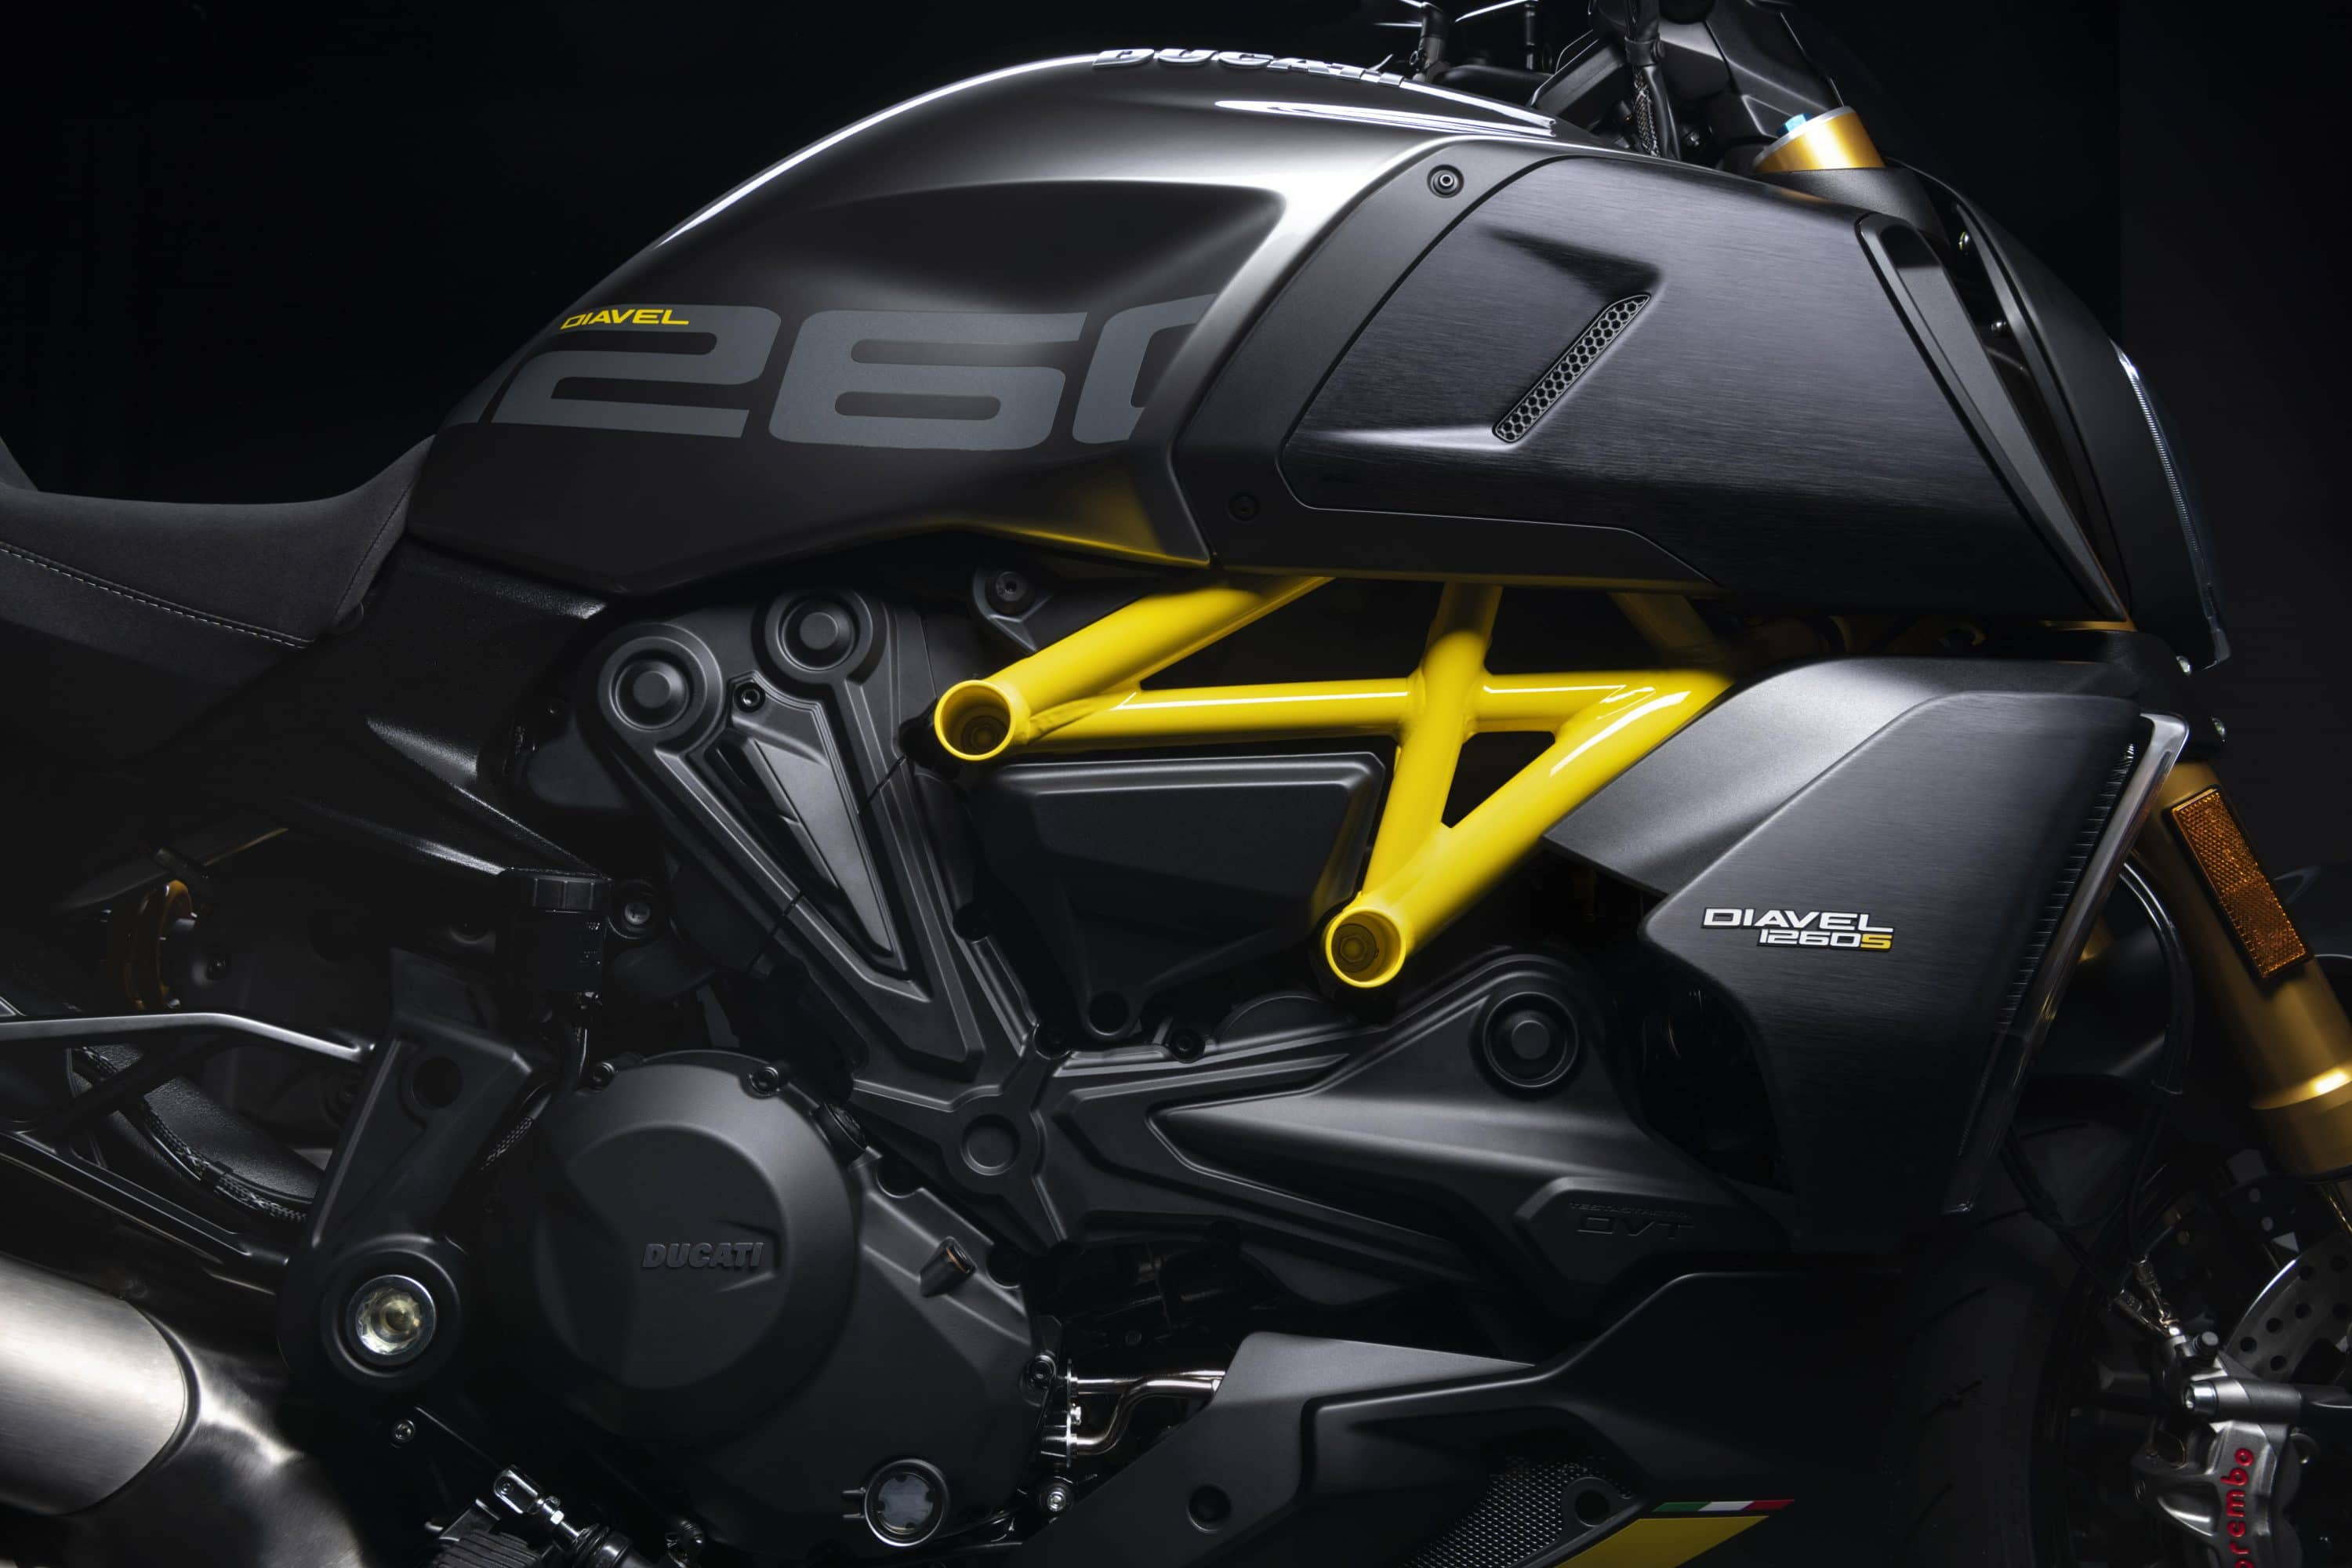 Diavel 1260 S Black and Steel